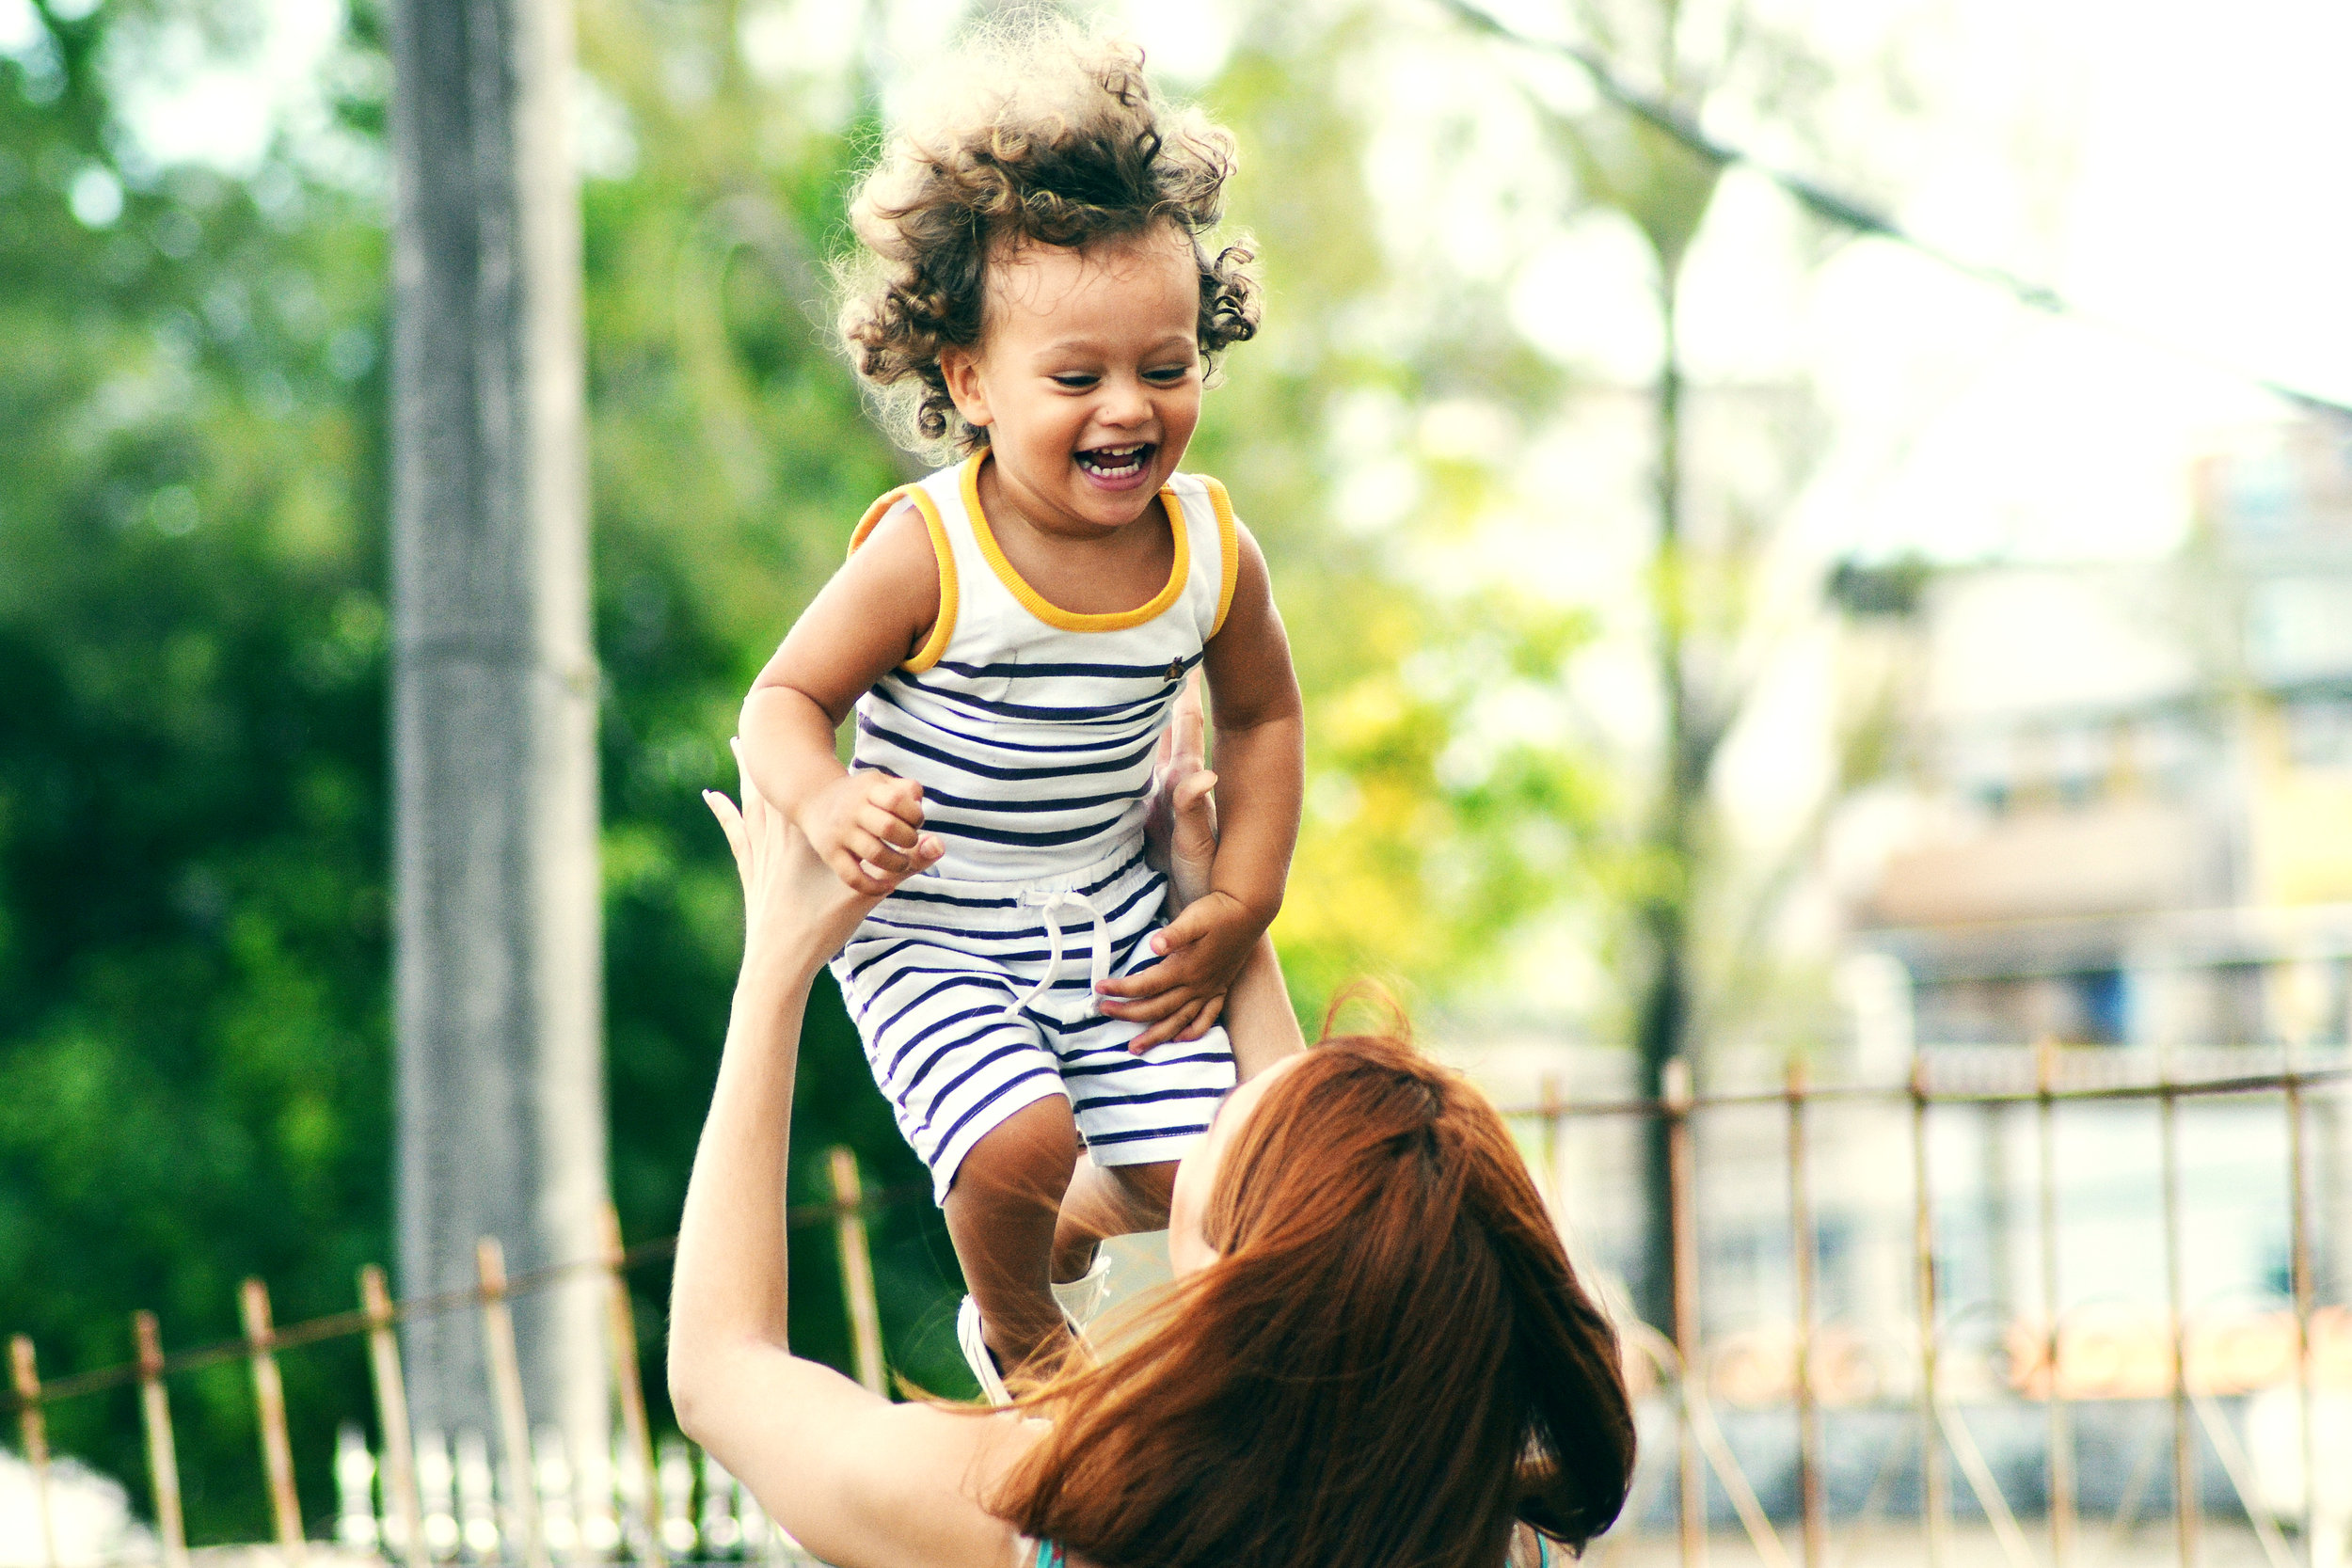 Maybe joy sounds like laughter. - I always say that laughter is the reward for the hard work of parenting! And one of the things I most love about my hubby is that he has a wonderful sense of humor and can often make me laugh when I am feeling low or even when I am frustrated with him.